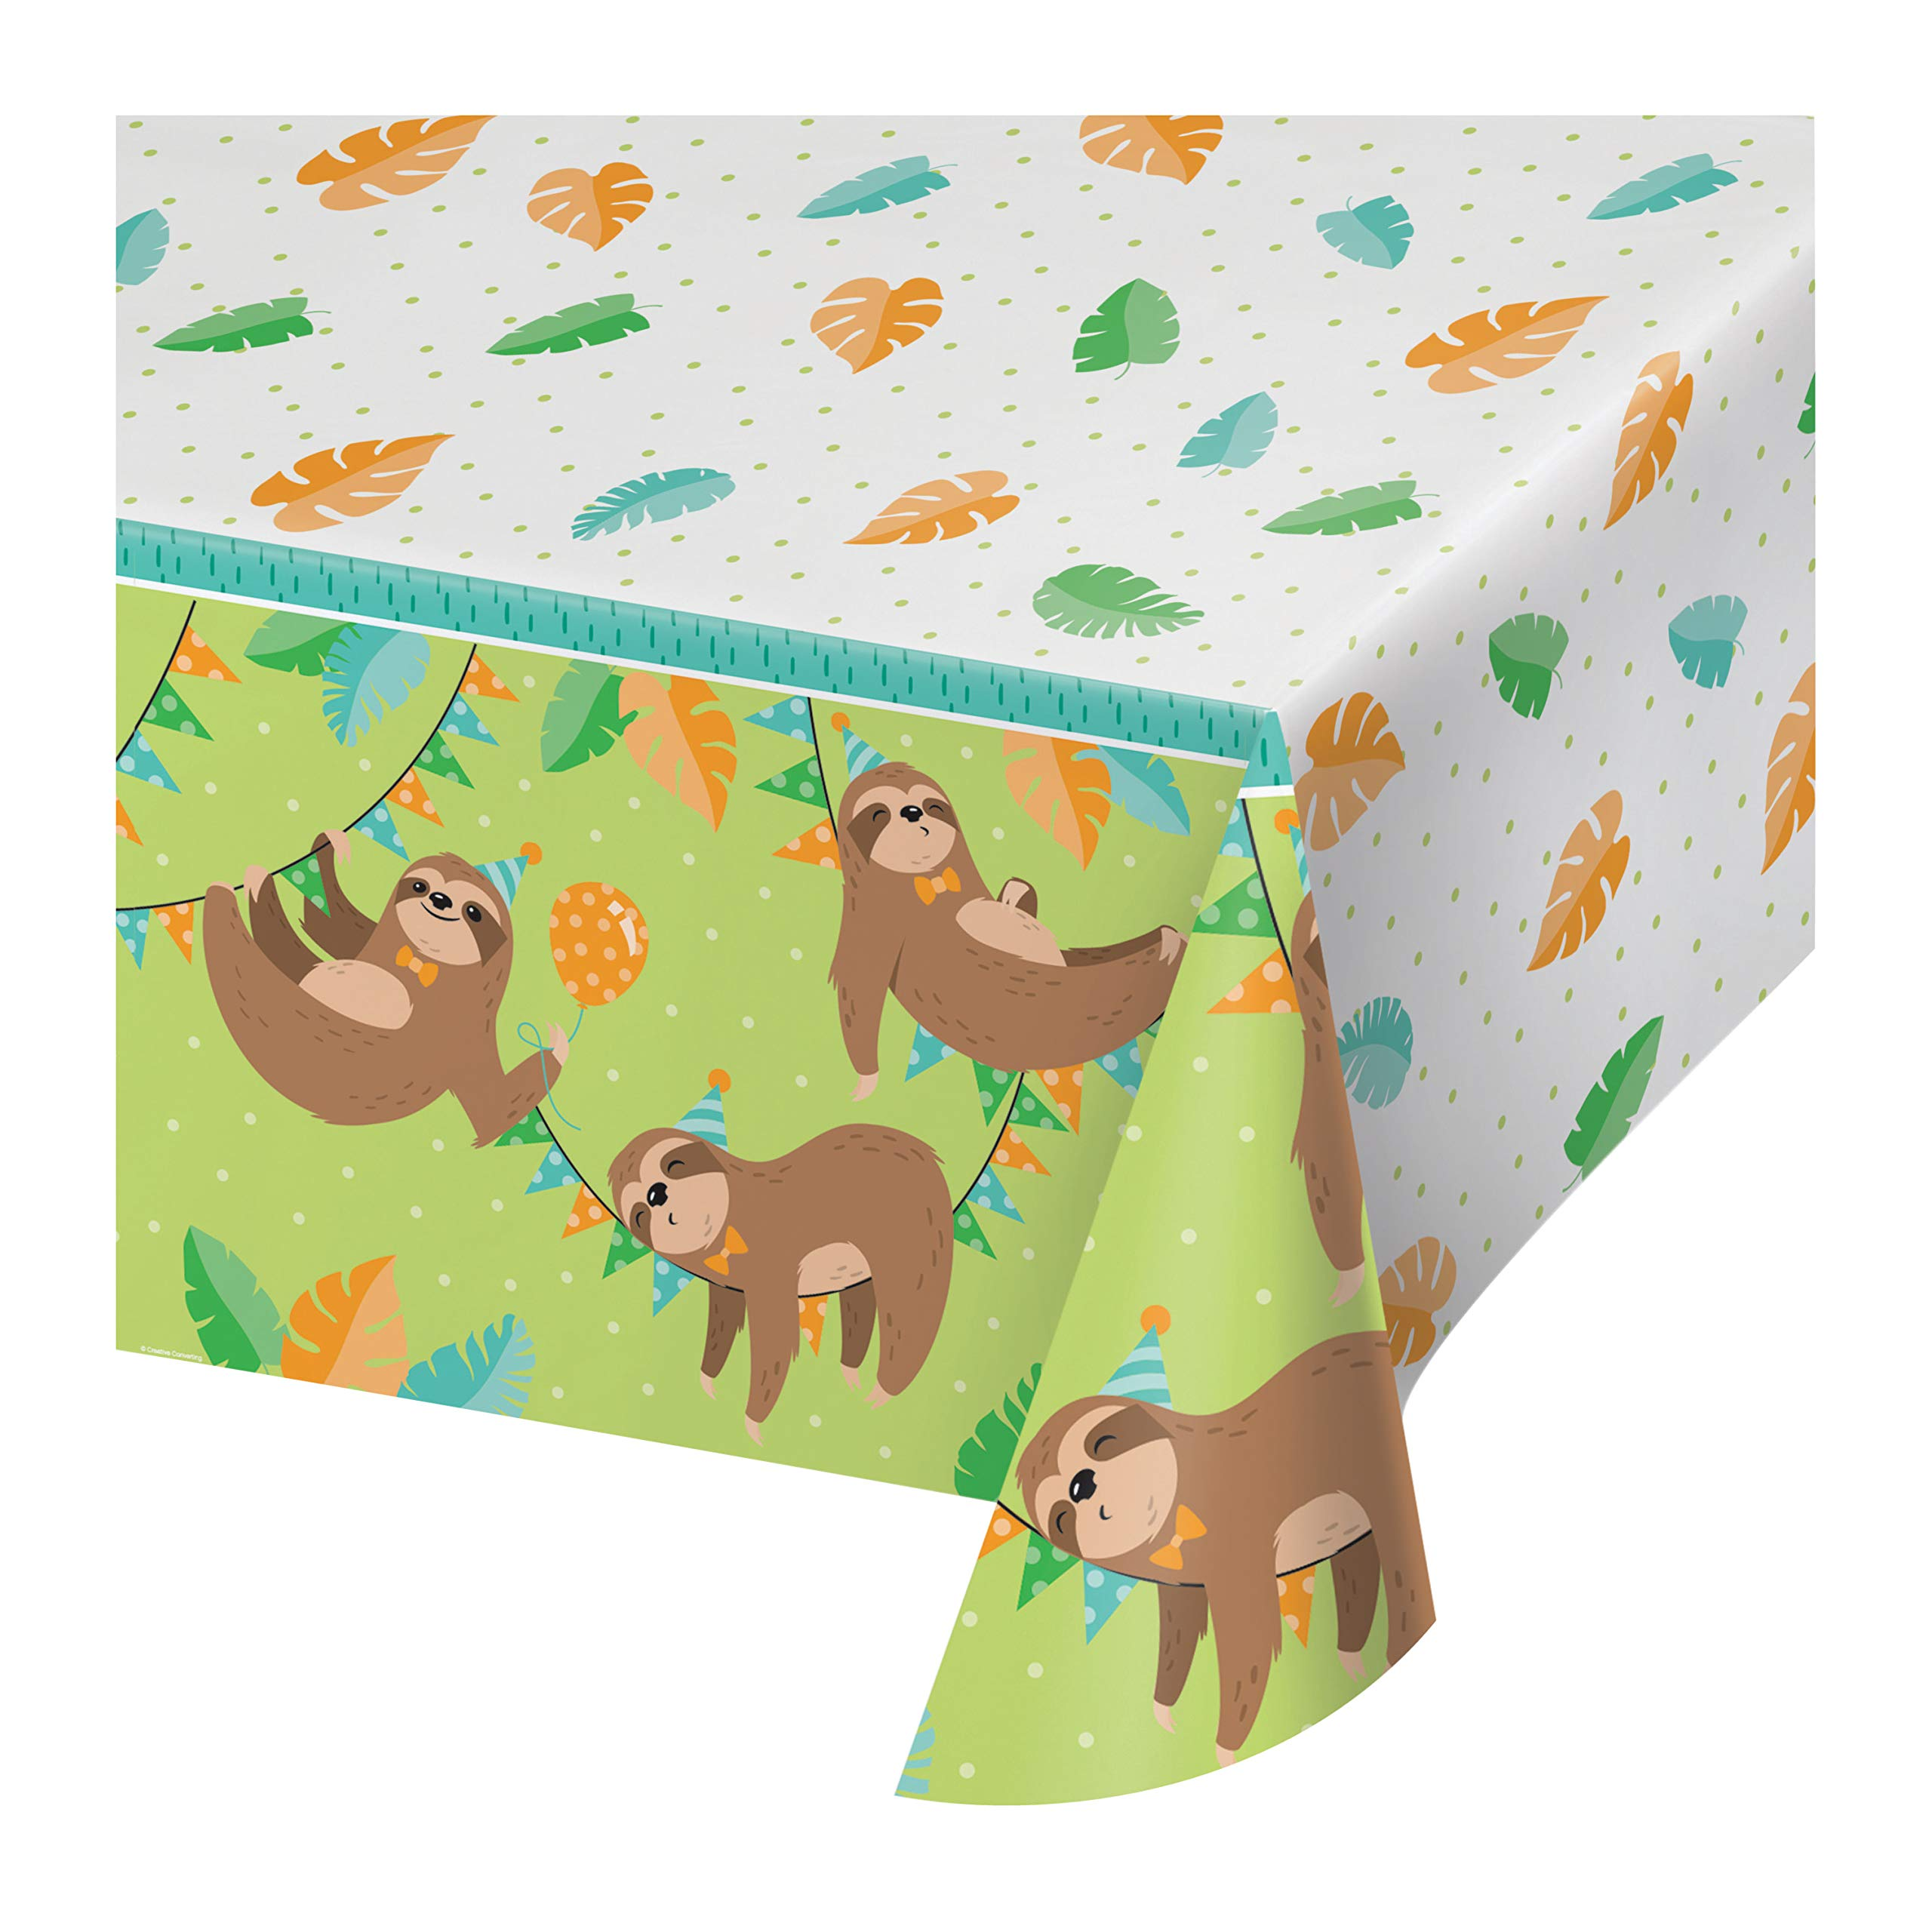 Sloth Party Plastic Tablecloths, 3 ct by Creative Converting